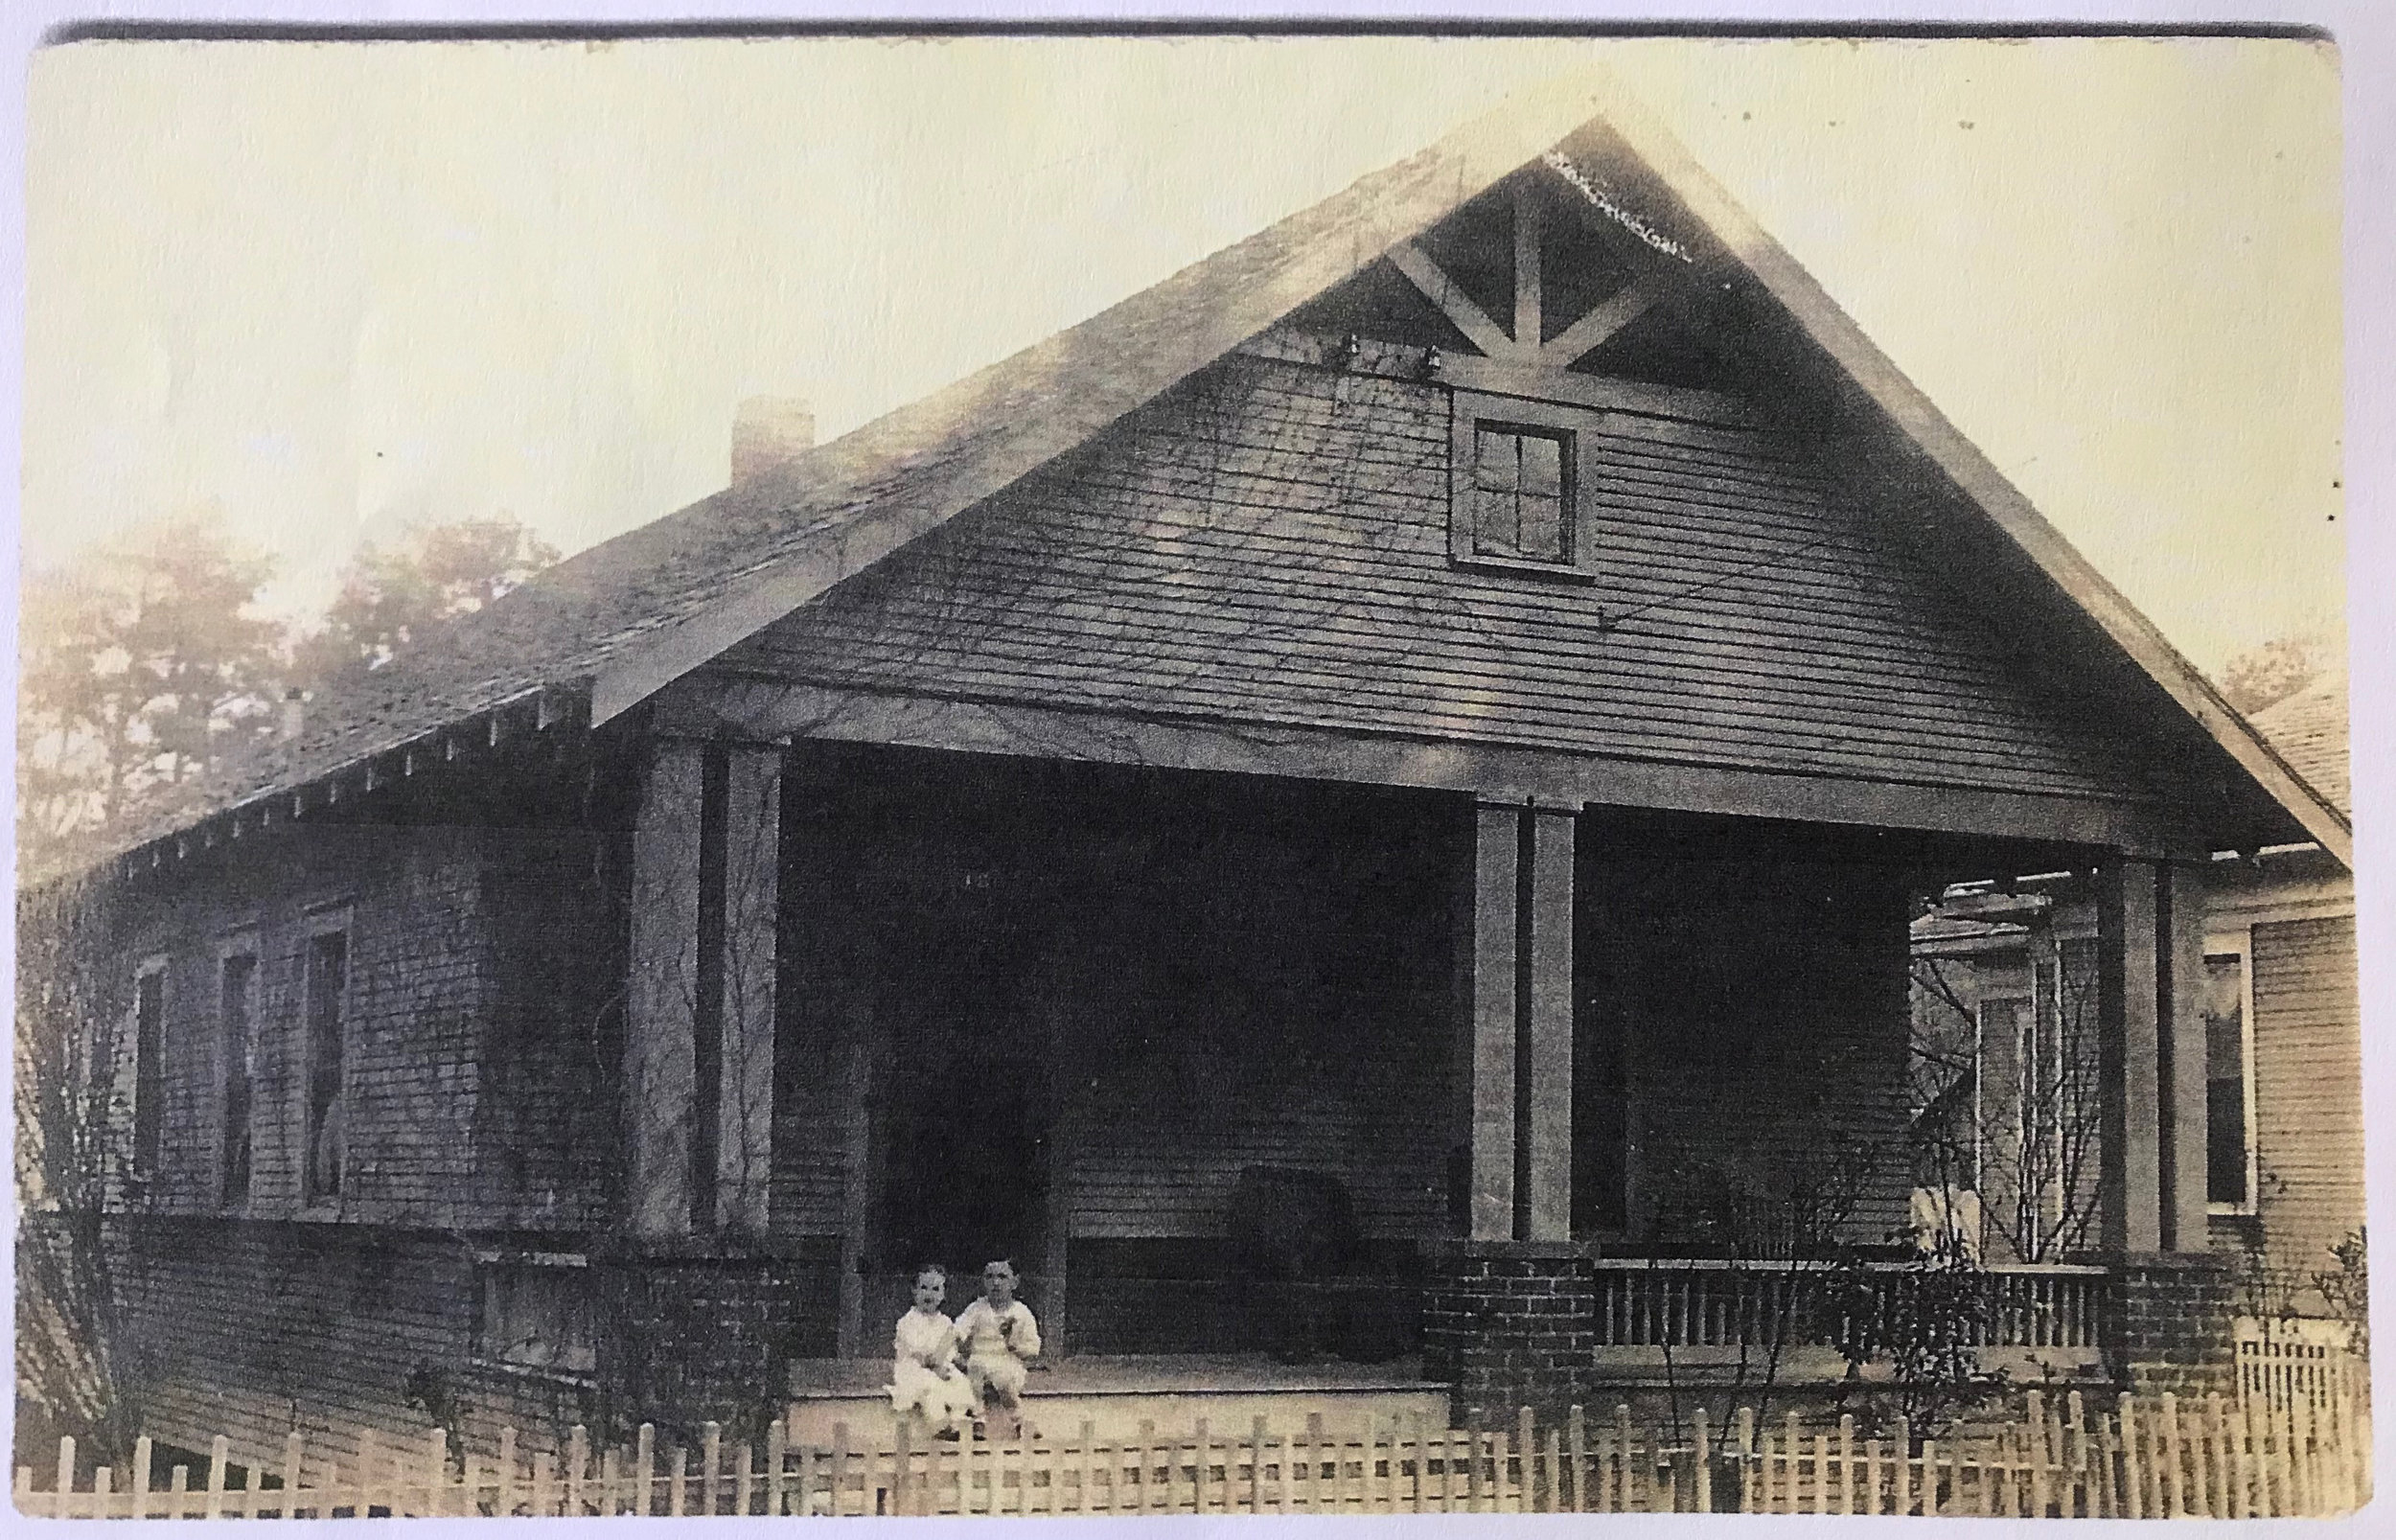 OriginalHouse1919.jpg